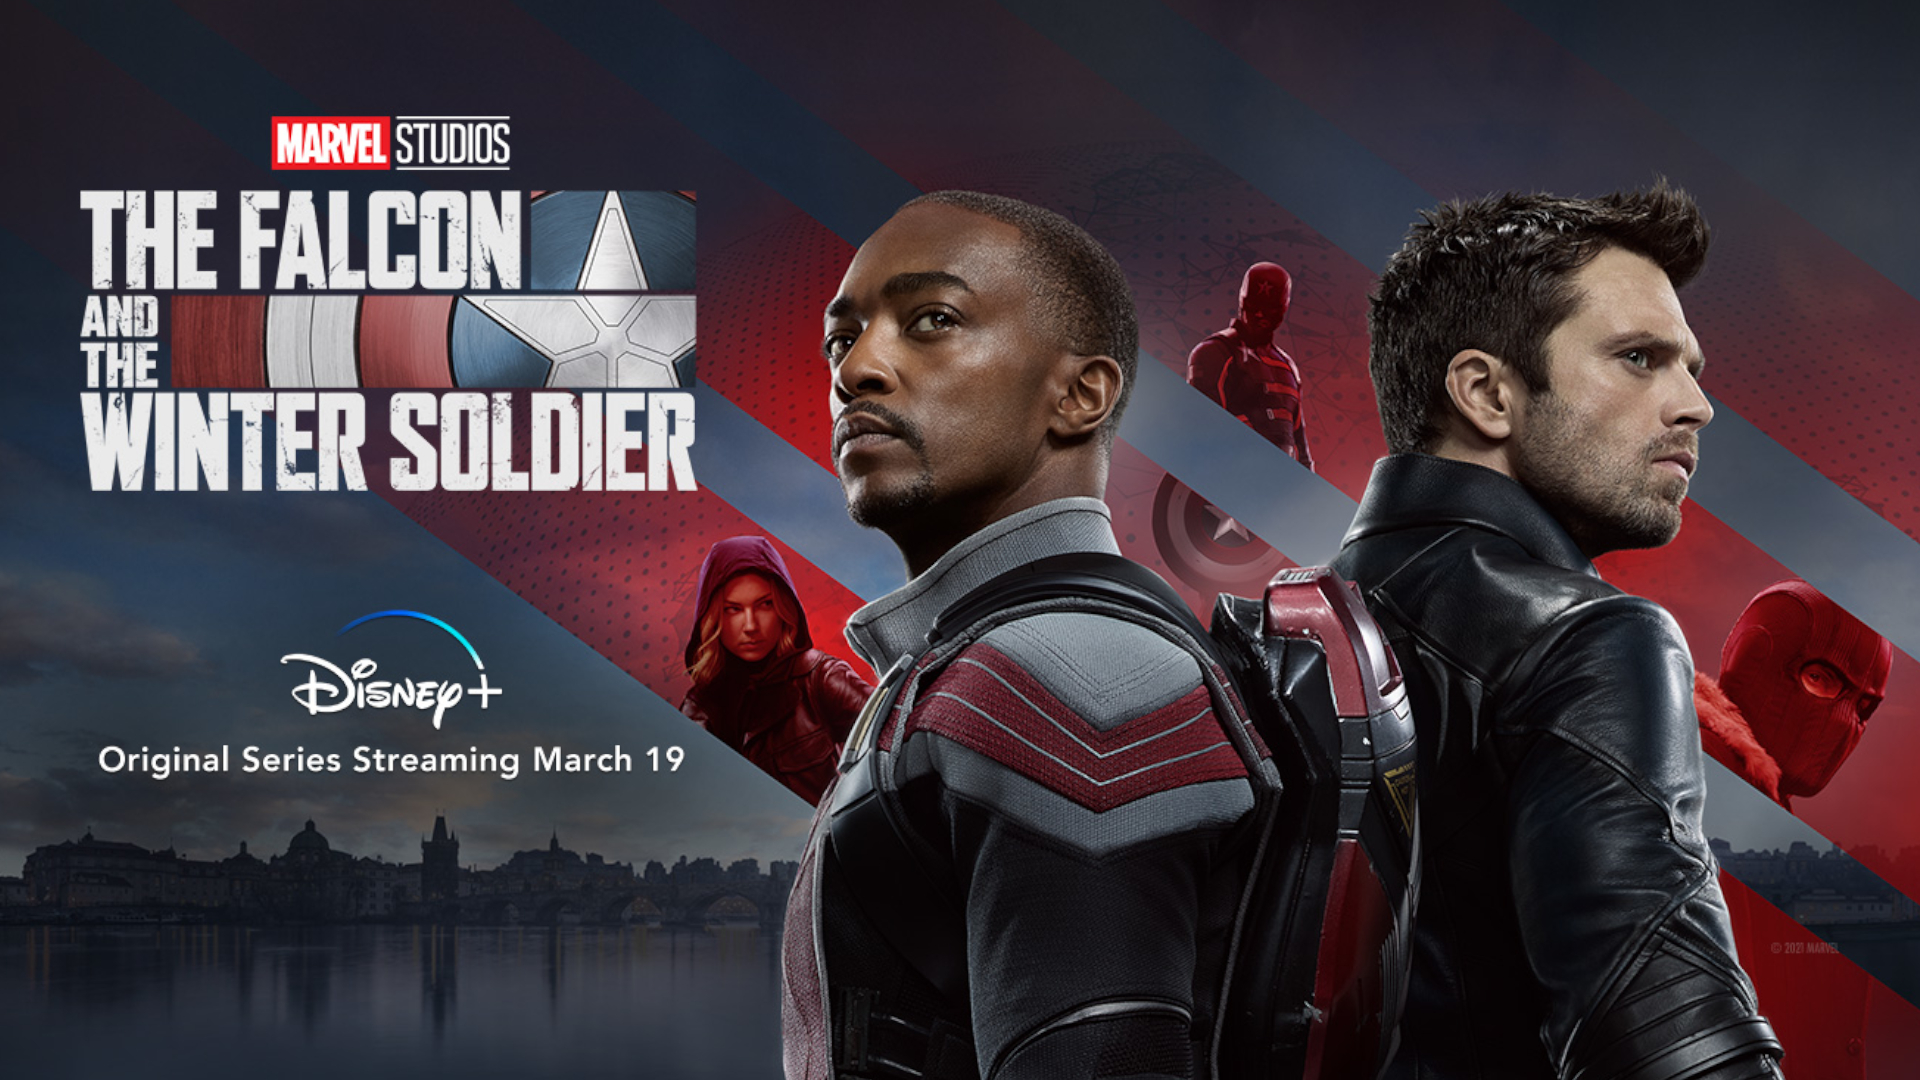 The falcon and the winter soldier all epidsode download